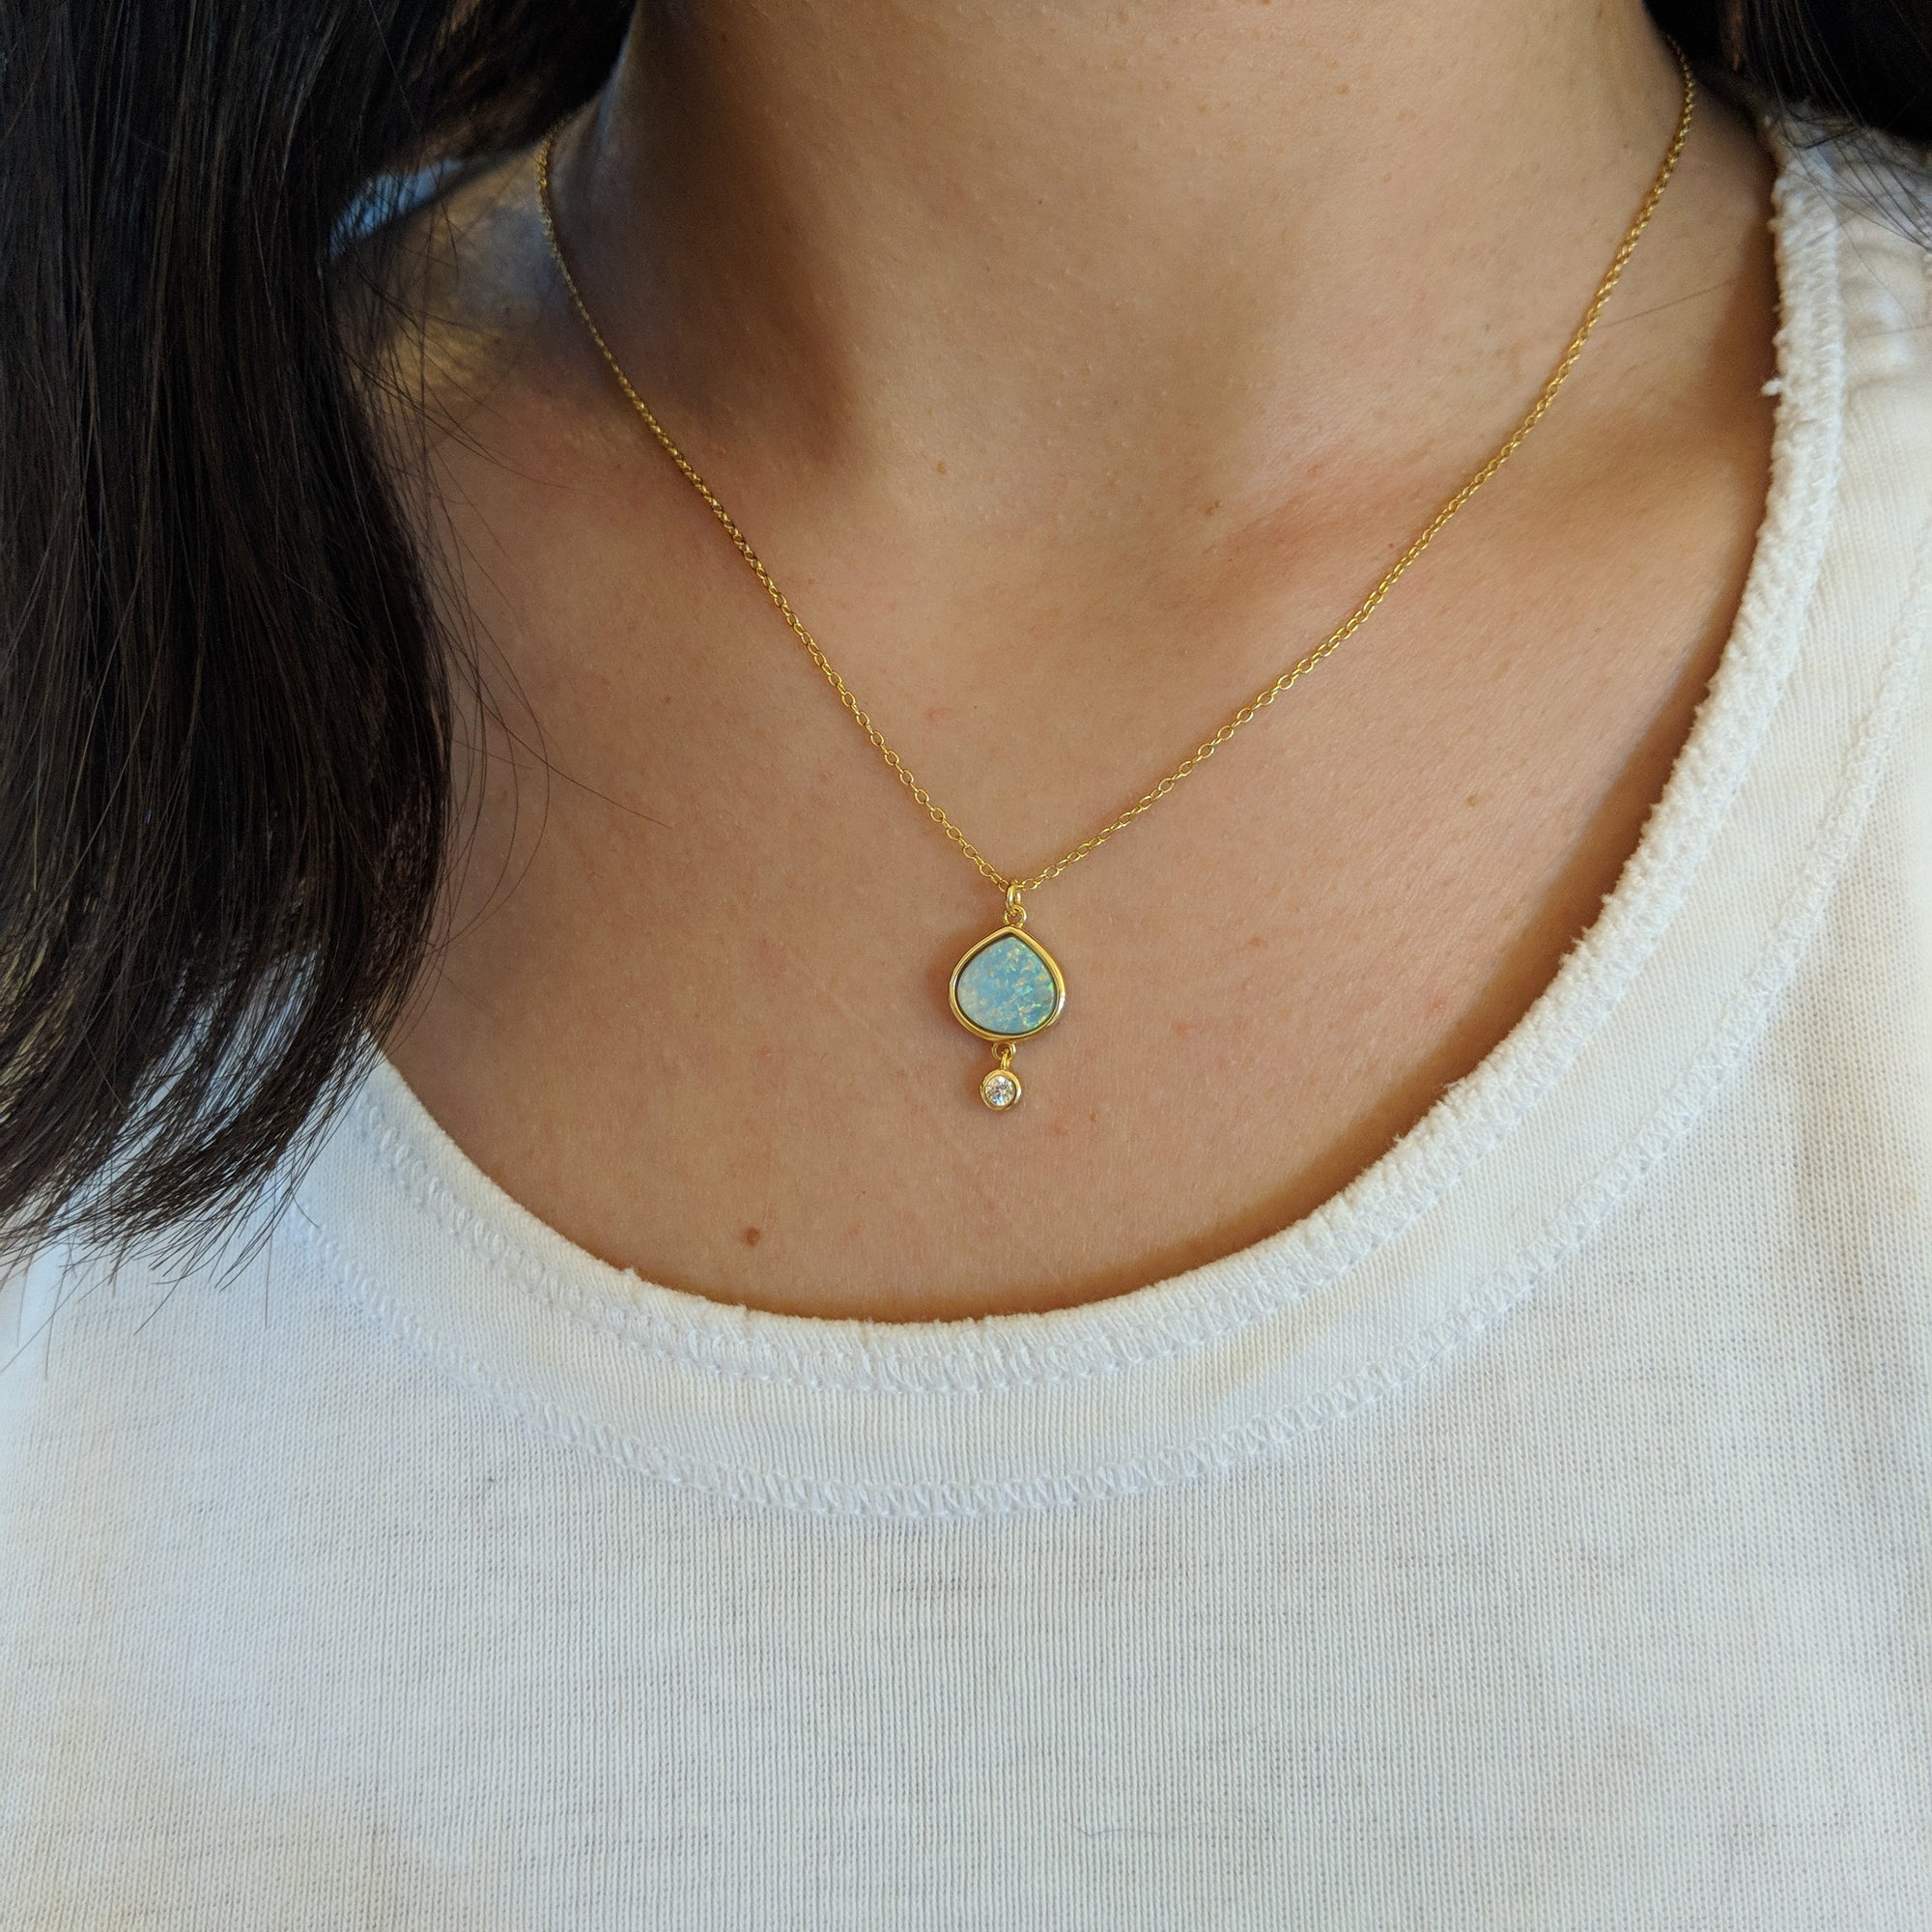 Best Friend green opal pear necklace with crystal drop